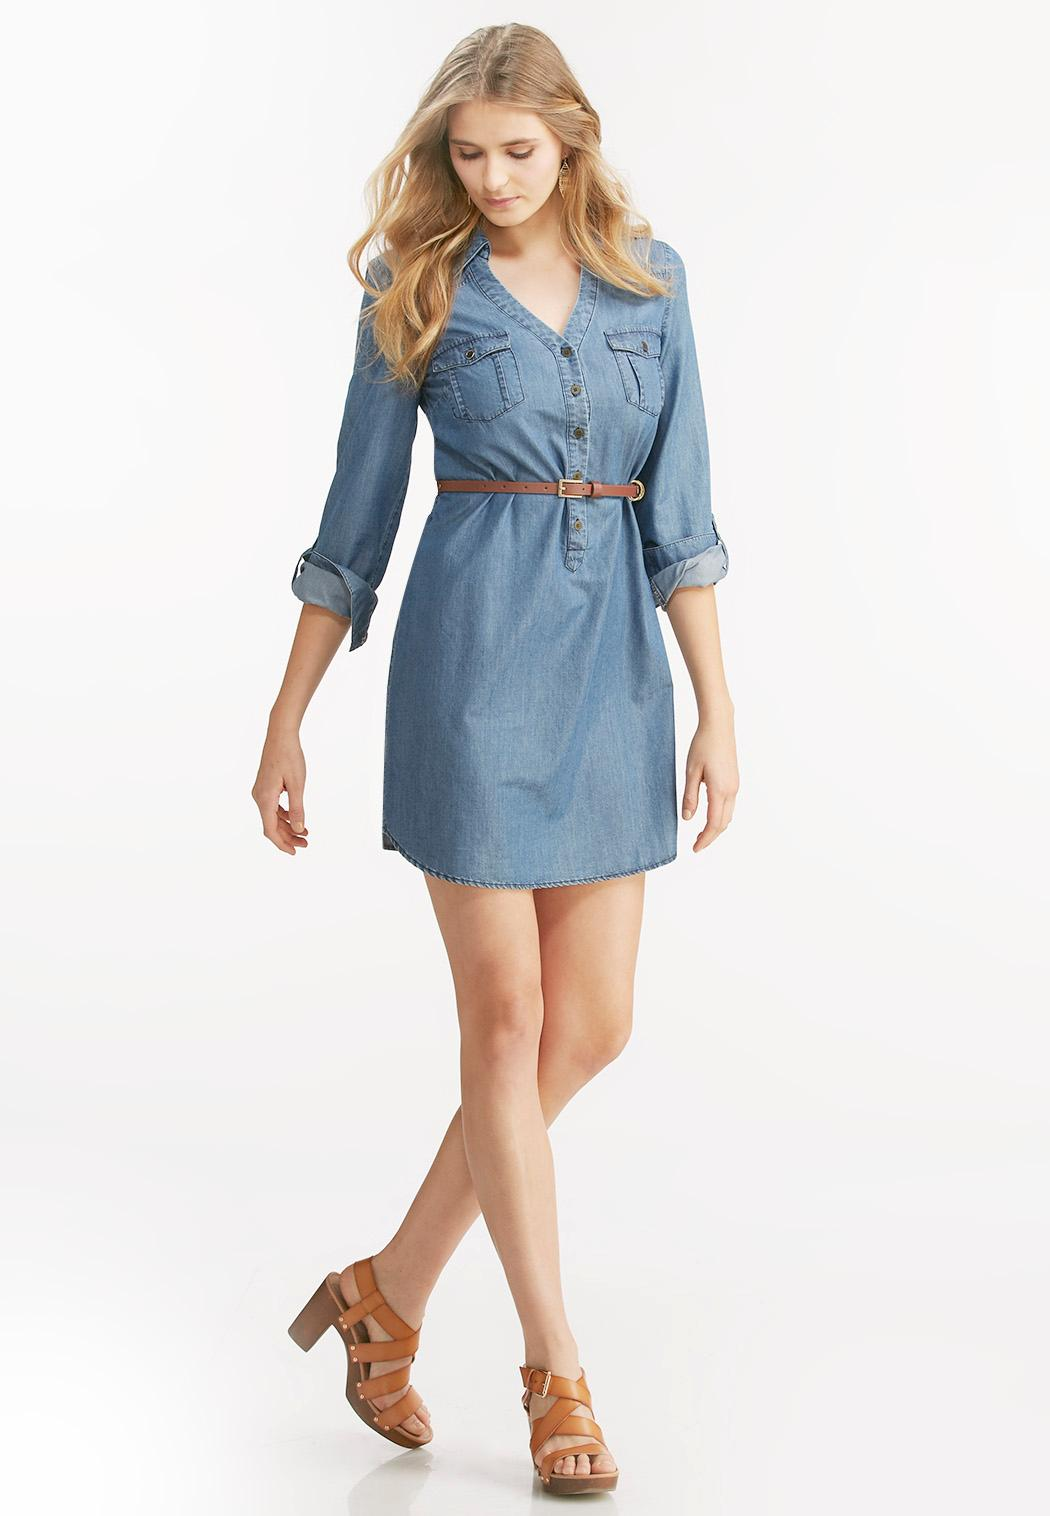 Belted chambray shirt dress plus dresses cato fashions for Plus size chambray shirt